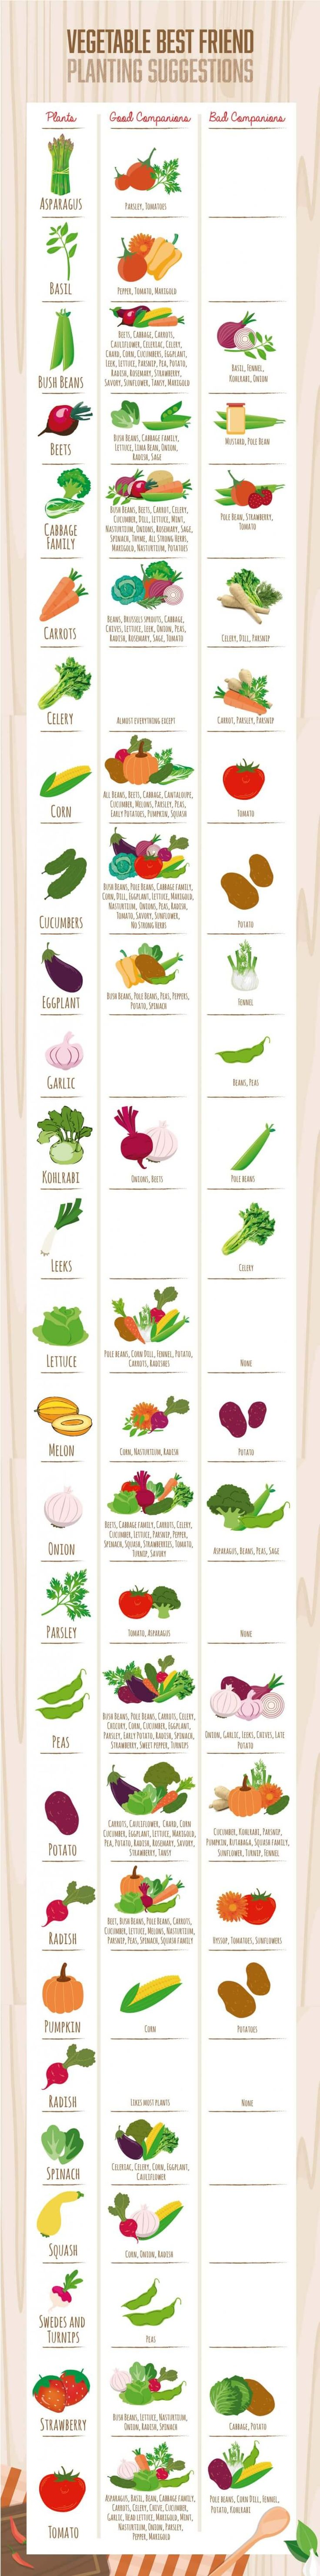 Did you know that when planted together some vegetables can help each other grow strong, and some attract pests or are prone to diseases that can kill off other plants? Learn which vegetables make good garden friends from this infographic! #vegan